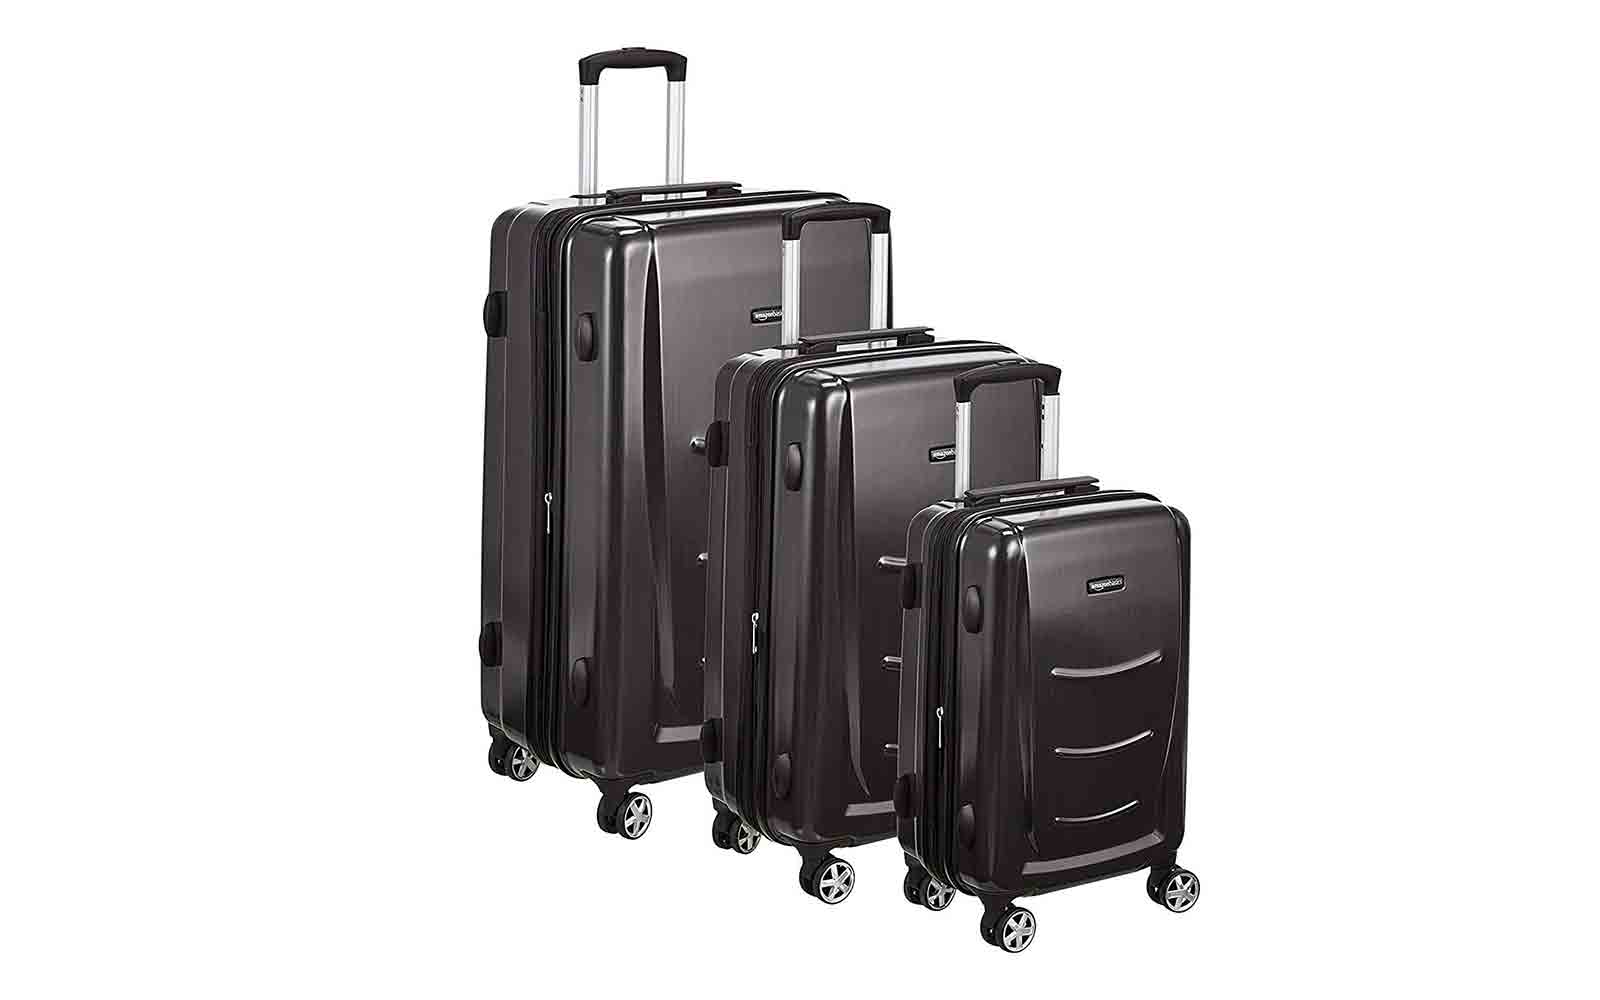 AmazonBasics 3 Piece Hard Shell Luggage